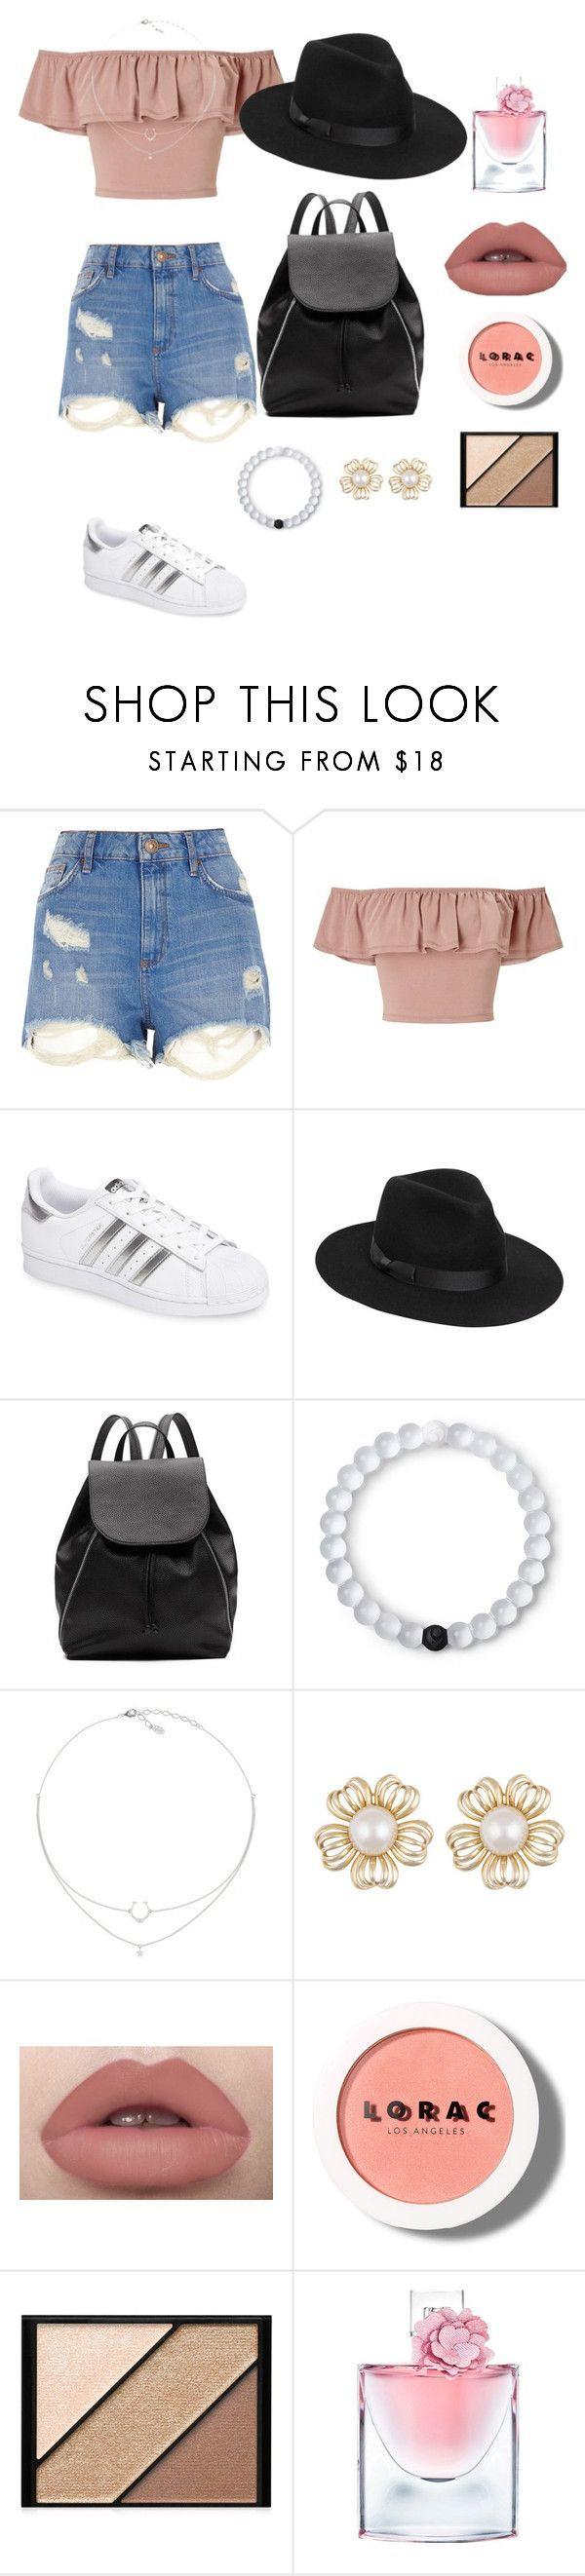 """How to wear Summer"" by leah-1x on Polyvore featuring River Island, Miss Selfridge, adidas, Lack of Color, Witchery, Lokai, LORAC, Elizabeth Arden and Lancôme"